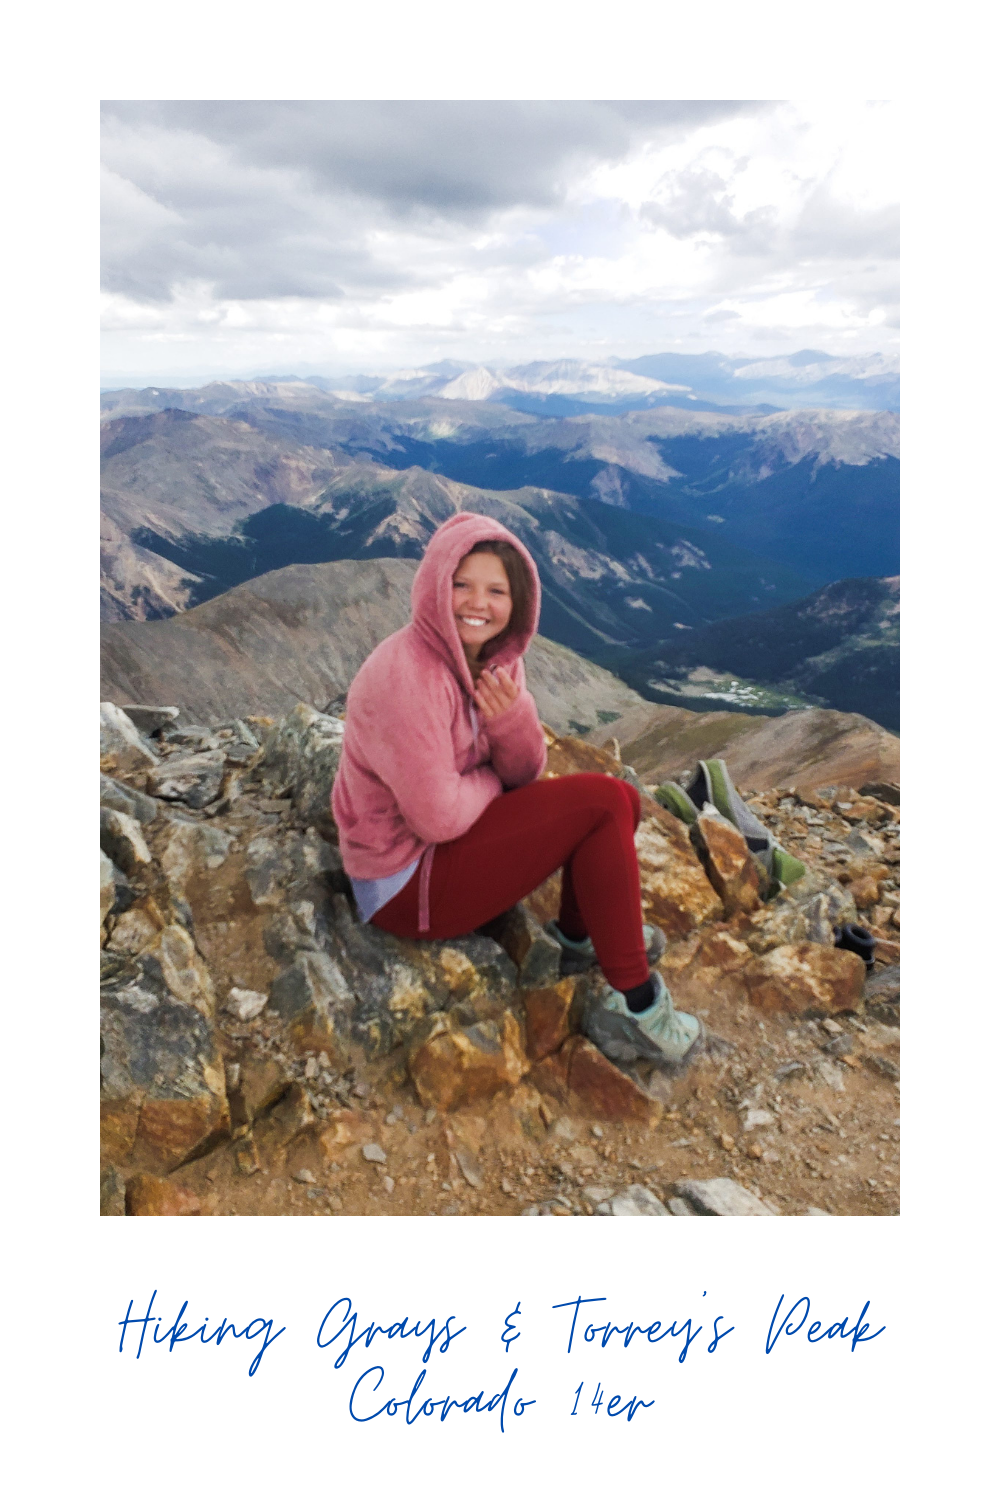 100% The Most Honest Blog You Will Read About Hiking Grays and Torreys Peak